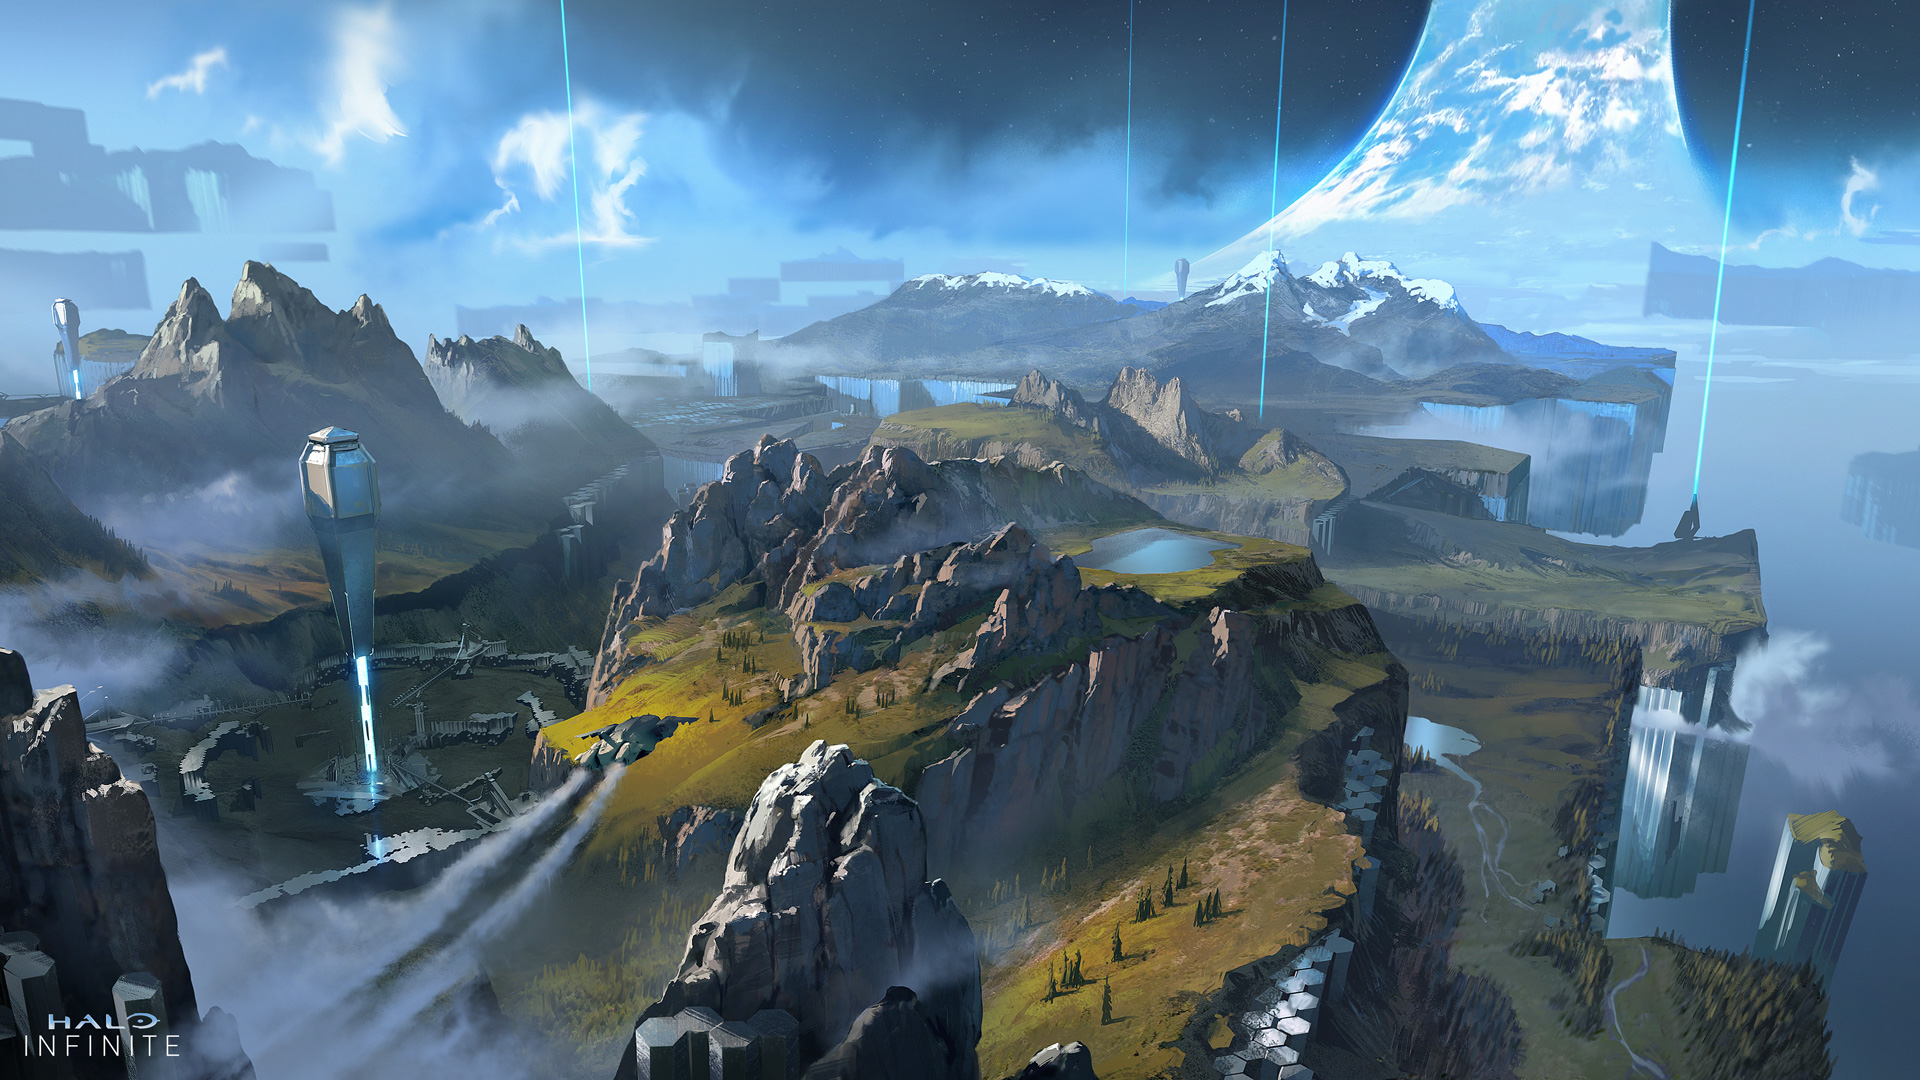 Halo-Infinite-2020_Ascension_ConceptArt_Cropped_03_1920x1080